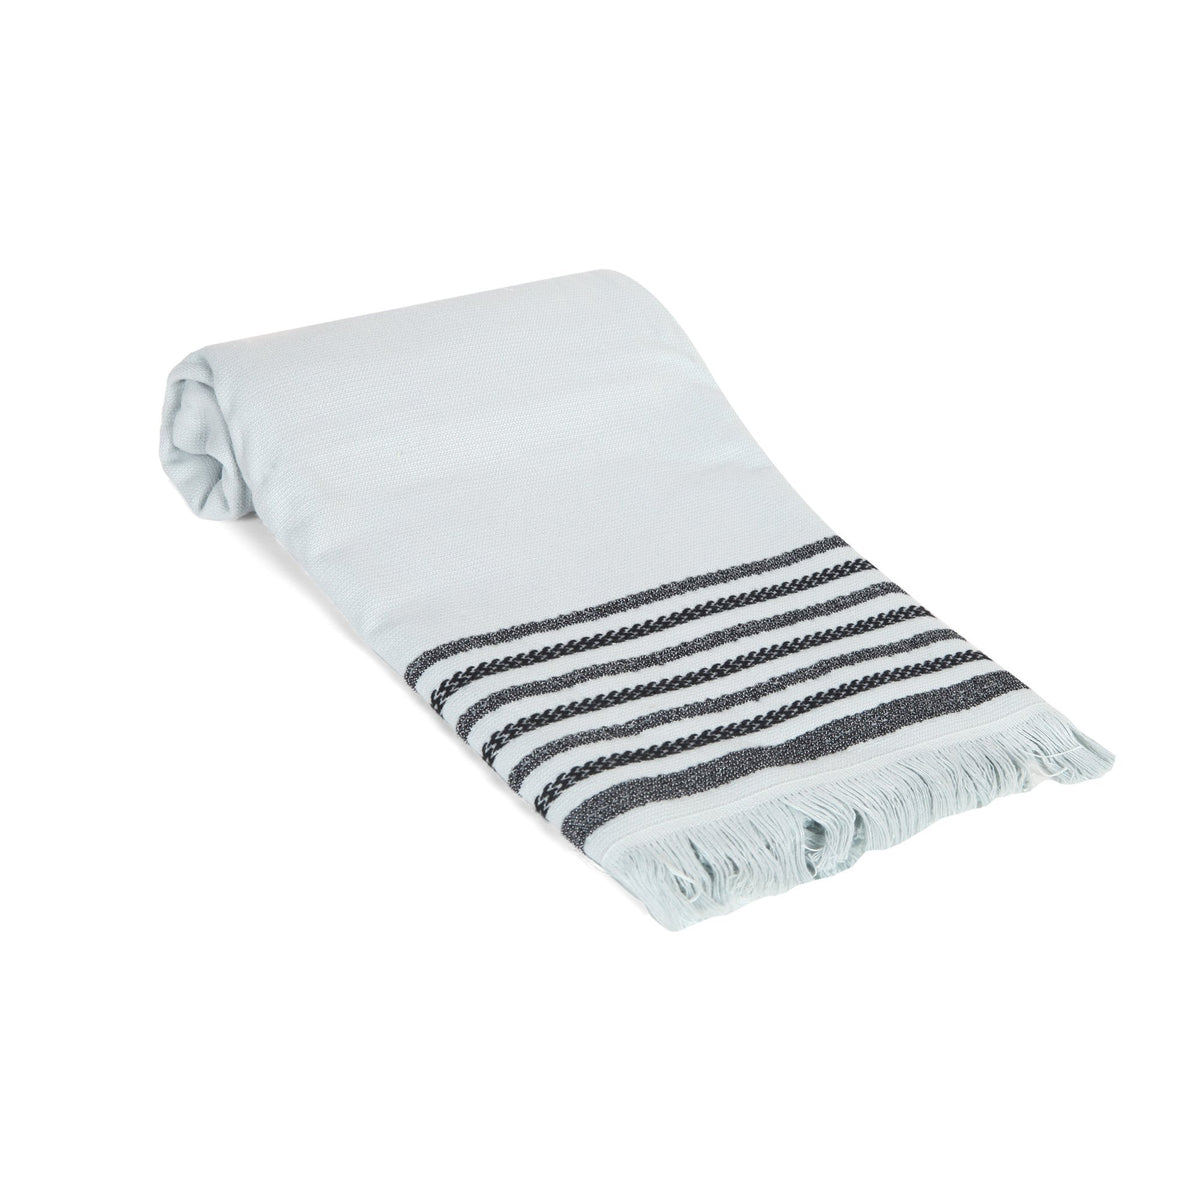 Dash Turkish Hand / Kitchen Towel